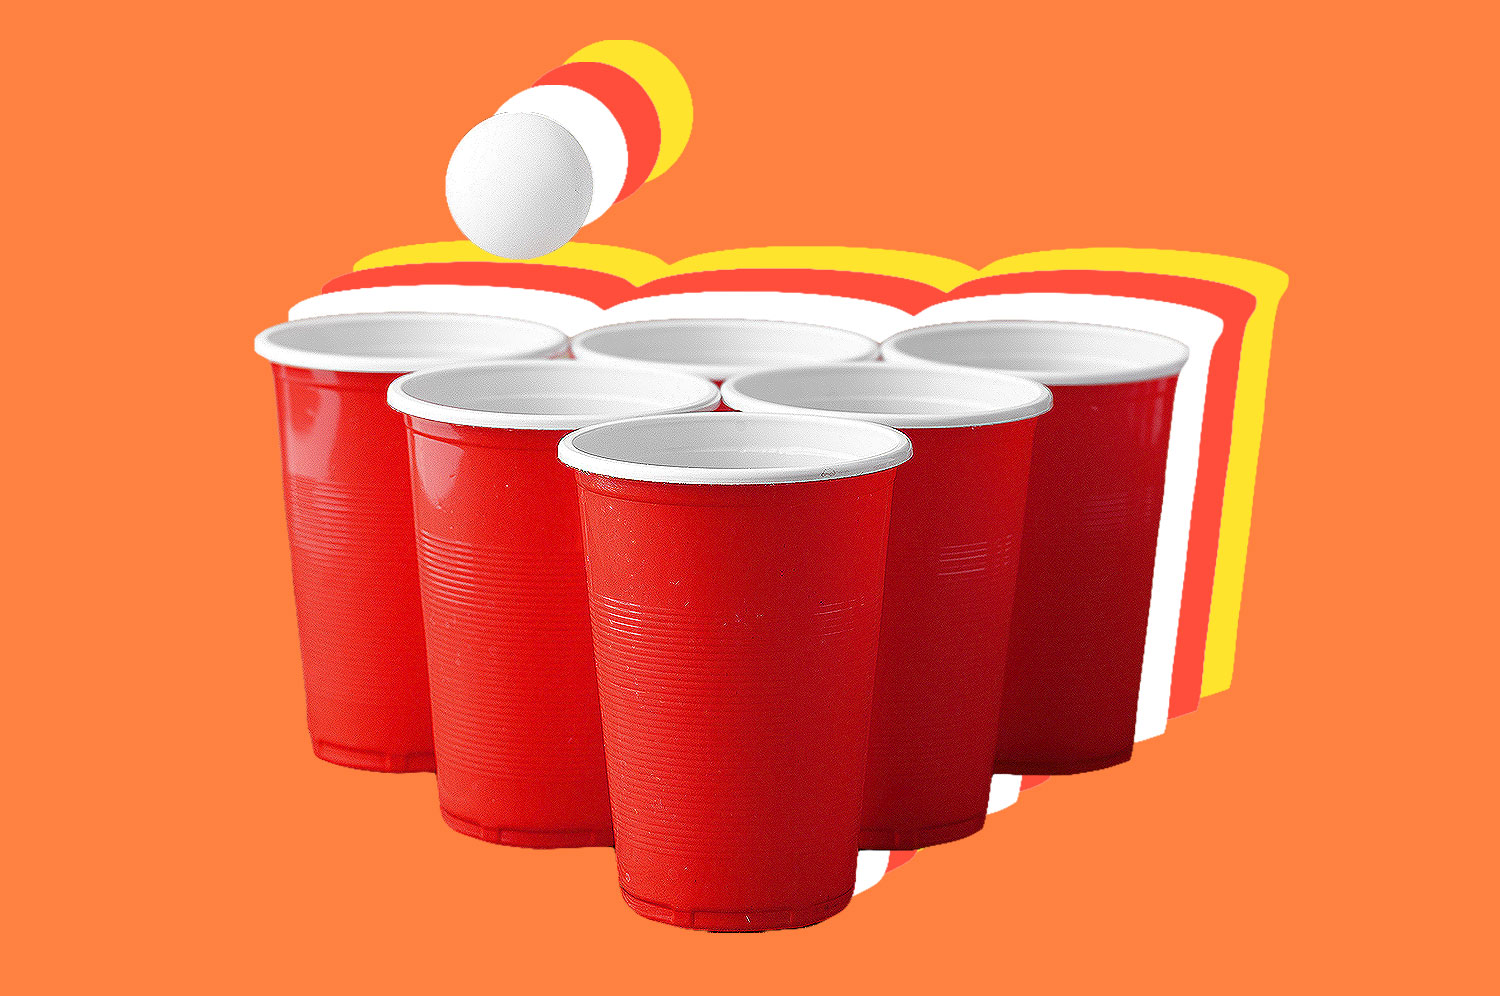 A pin ball floats above red cups arranged in a pyramid shape